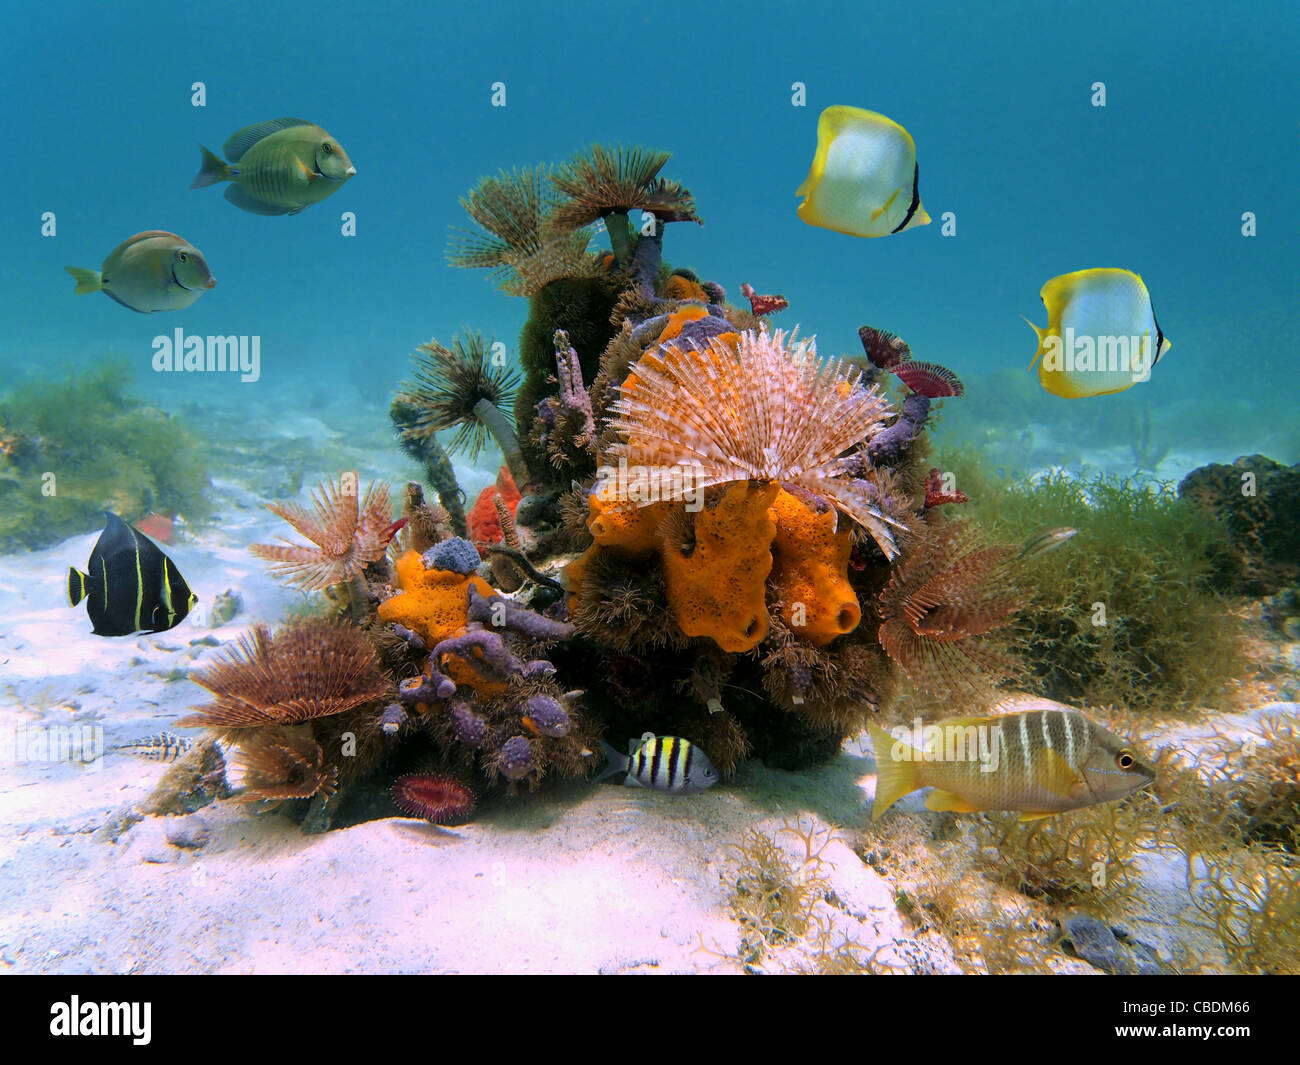 Underwater colorful marine life with marine worms, sponges and tropical fish in the Caribbean sea - Stock Image